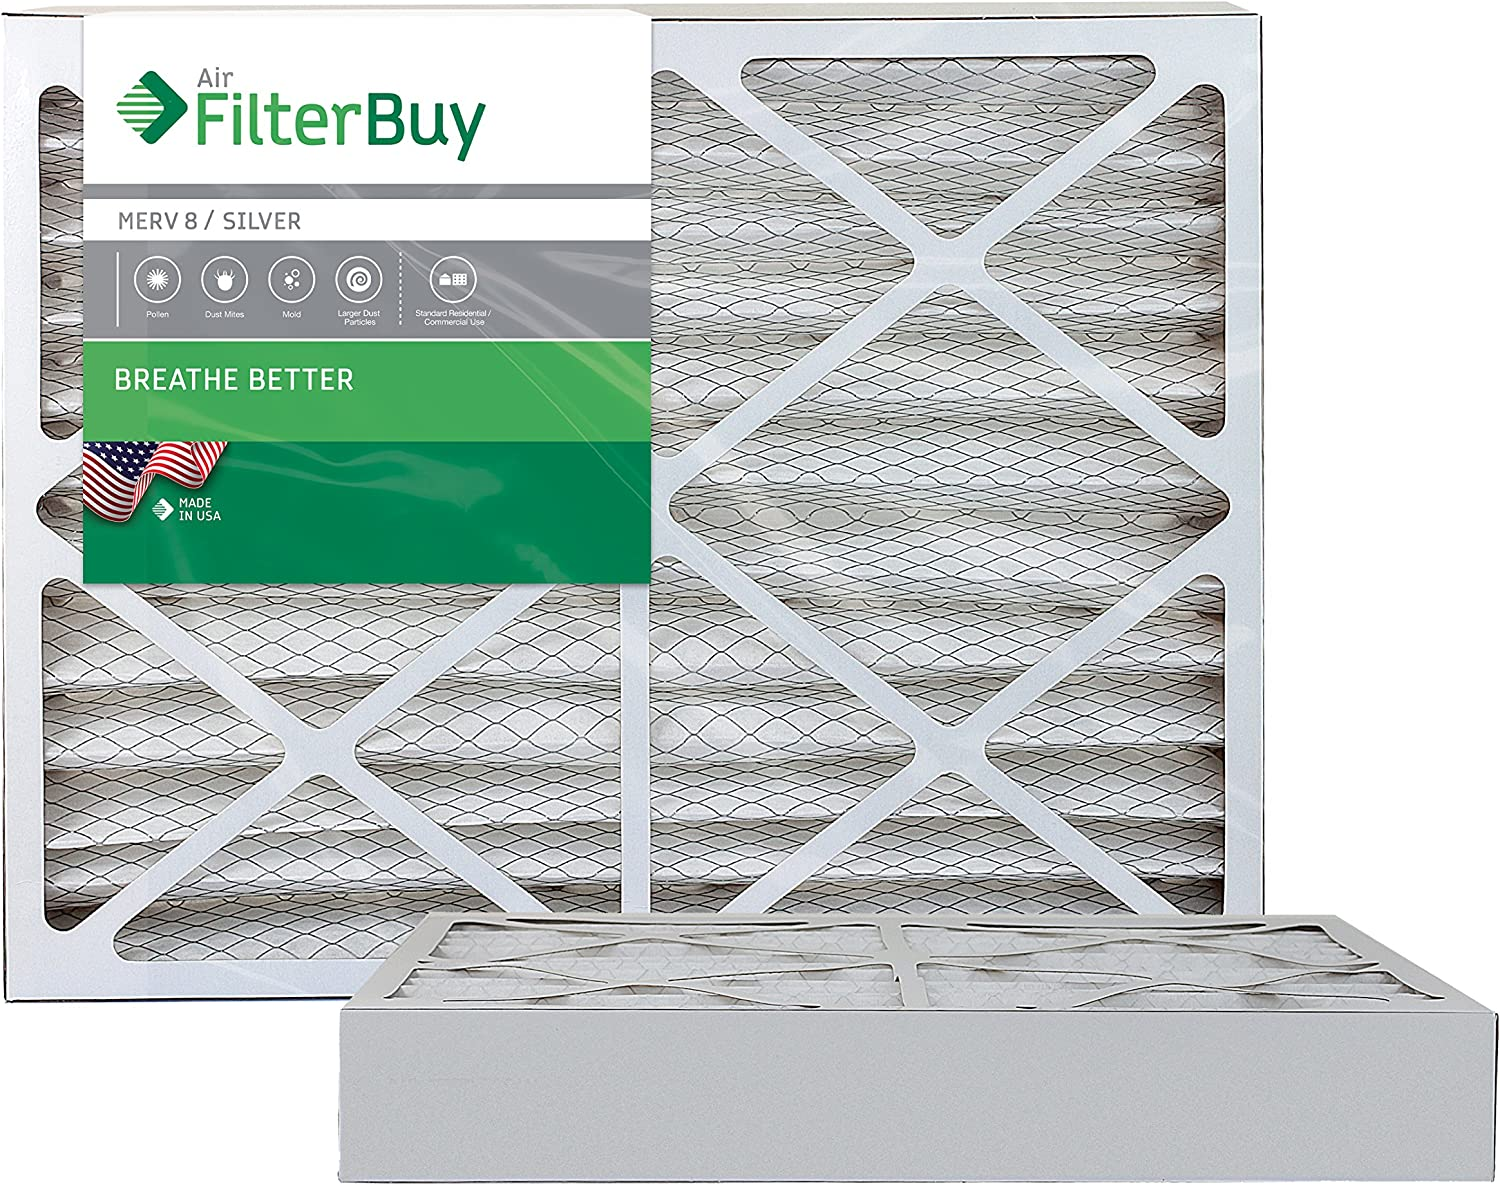 FilterBuy 20x25x4 MERV 8 Pleated AC Furnace Air Filter, (Pack of 2 Filters), 20x25x4 – Silver